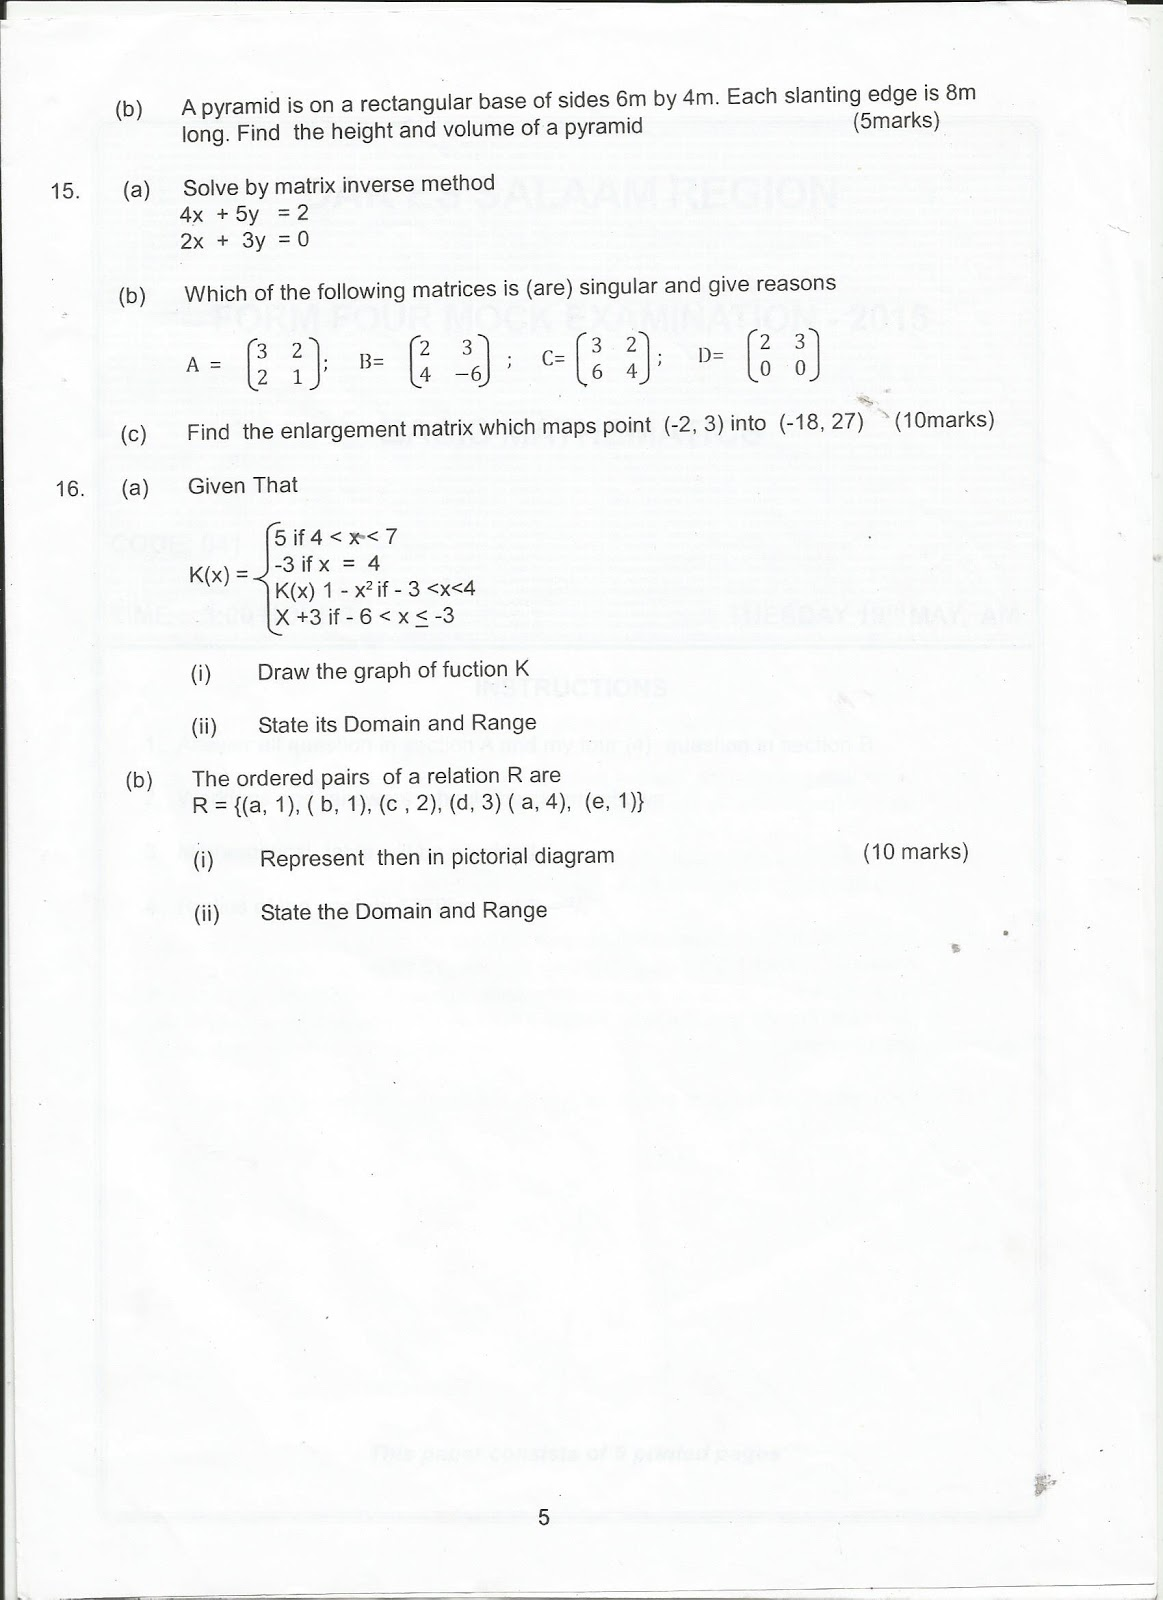 Mocks exams past paper corrections | College paper Sample